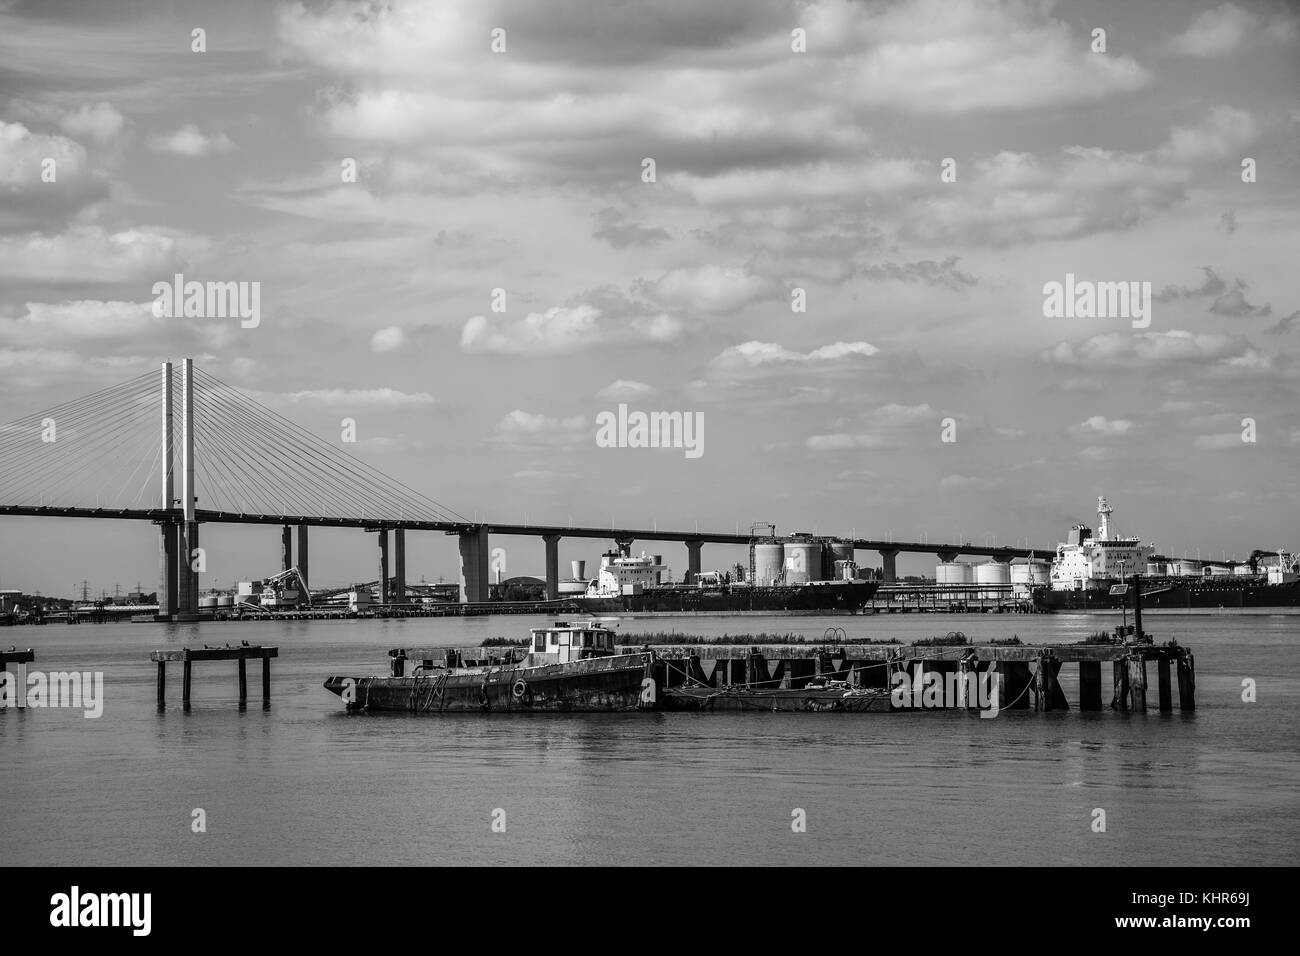 QEII Bridge over the River Thames with barges in foreground, mono - Stock Image